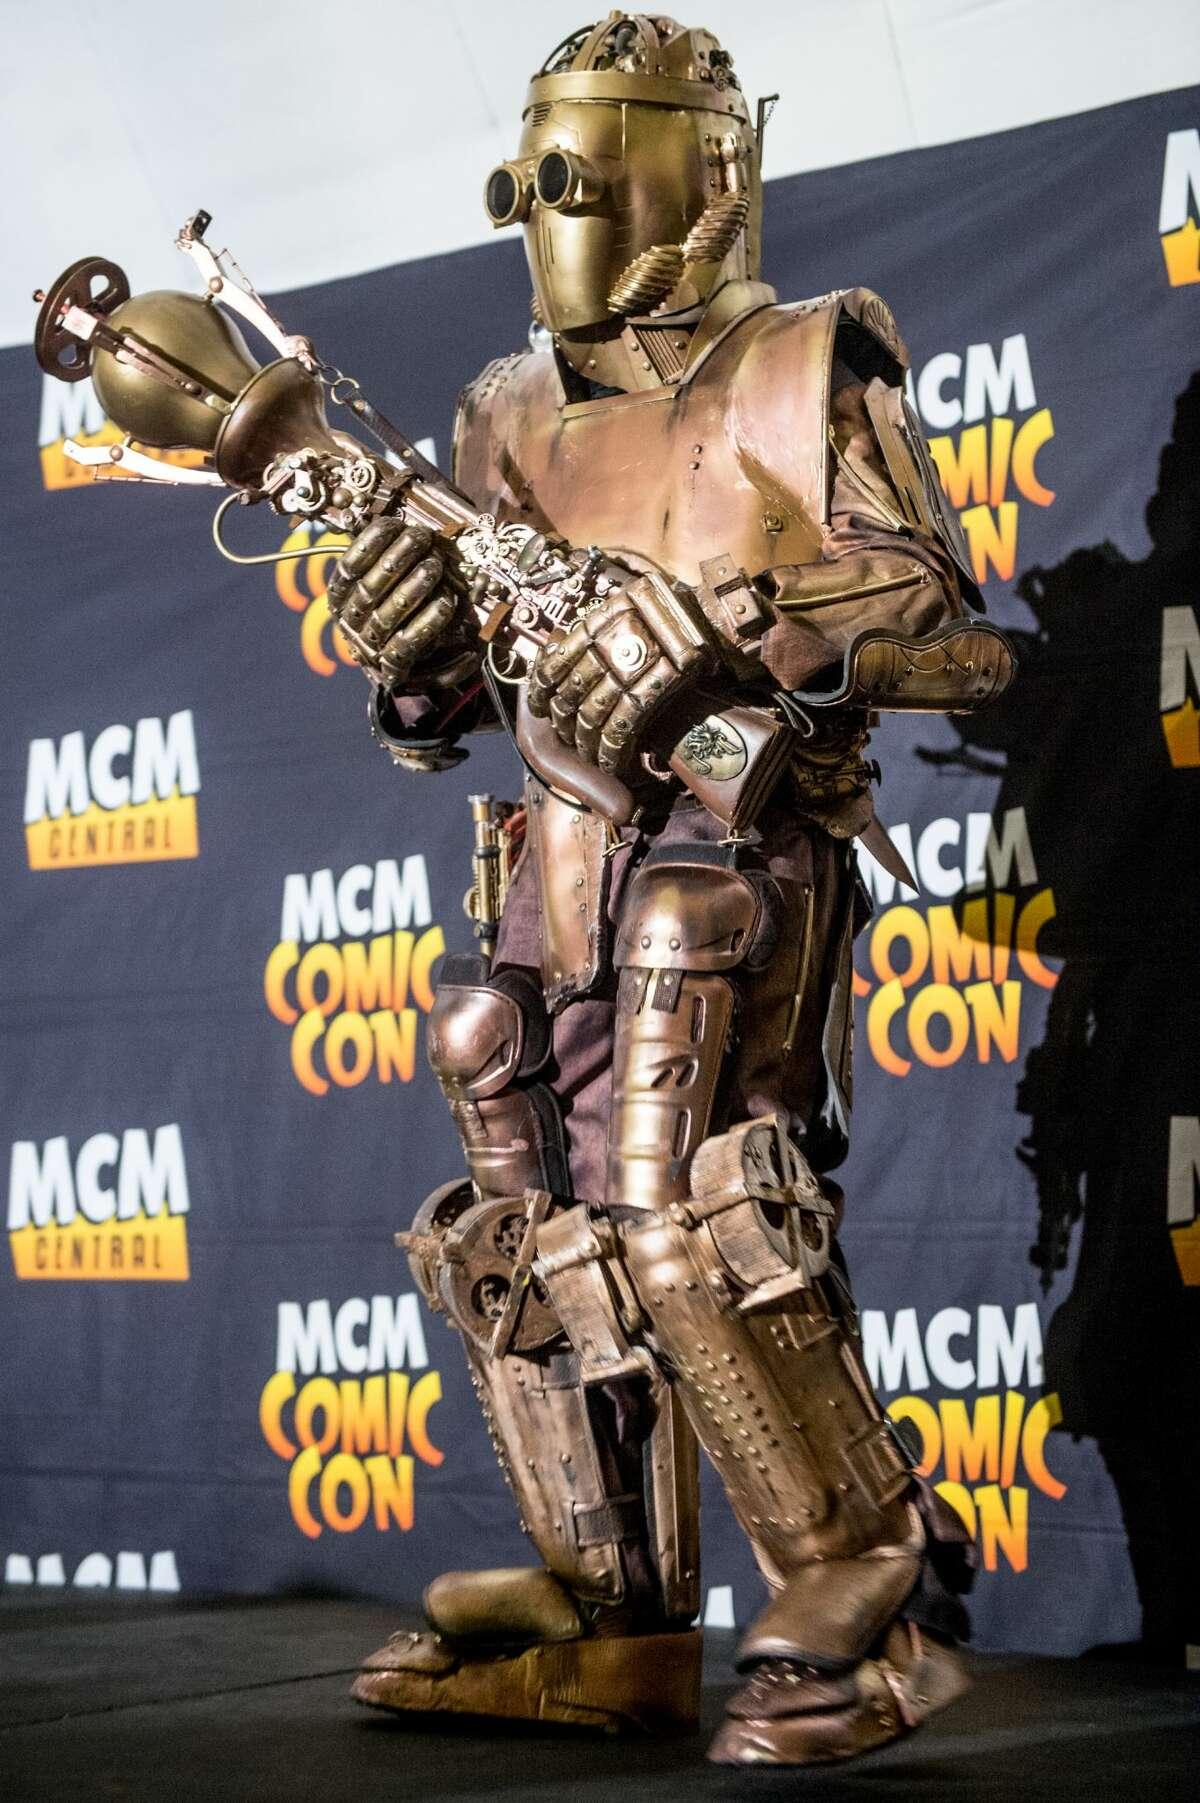 A cosplayer dressed as a Victorian steampunk robot British soldier on day 2 of the November Birmingham MCM Comic Con at the National Exhibition Centre (NEC) in Birmingham, UK on November 20, 2016 in Birmingham, England.